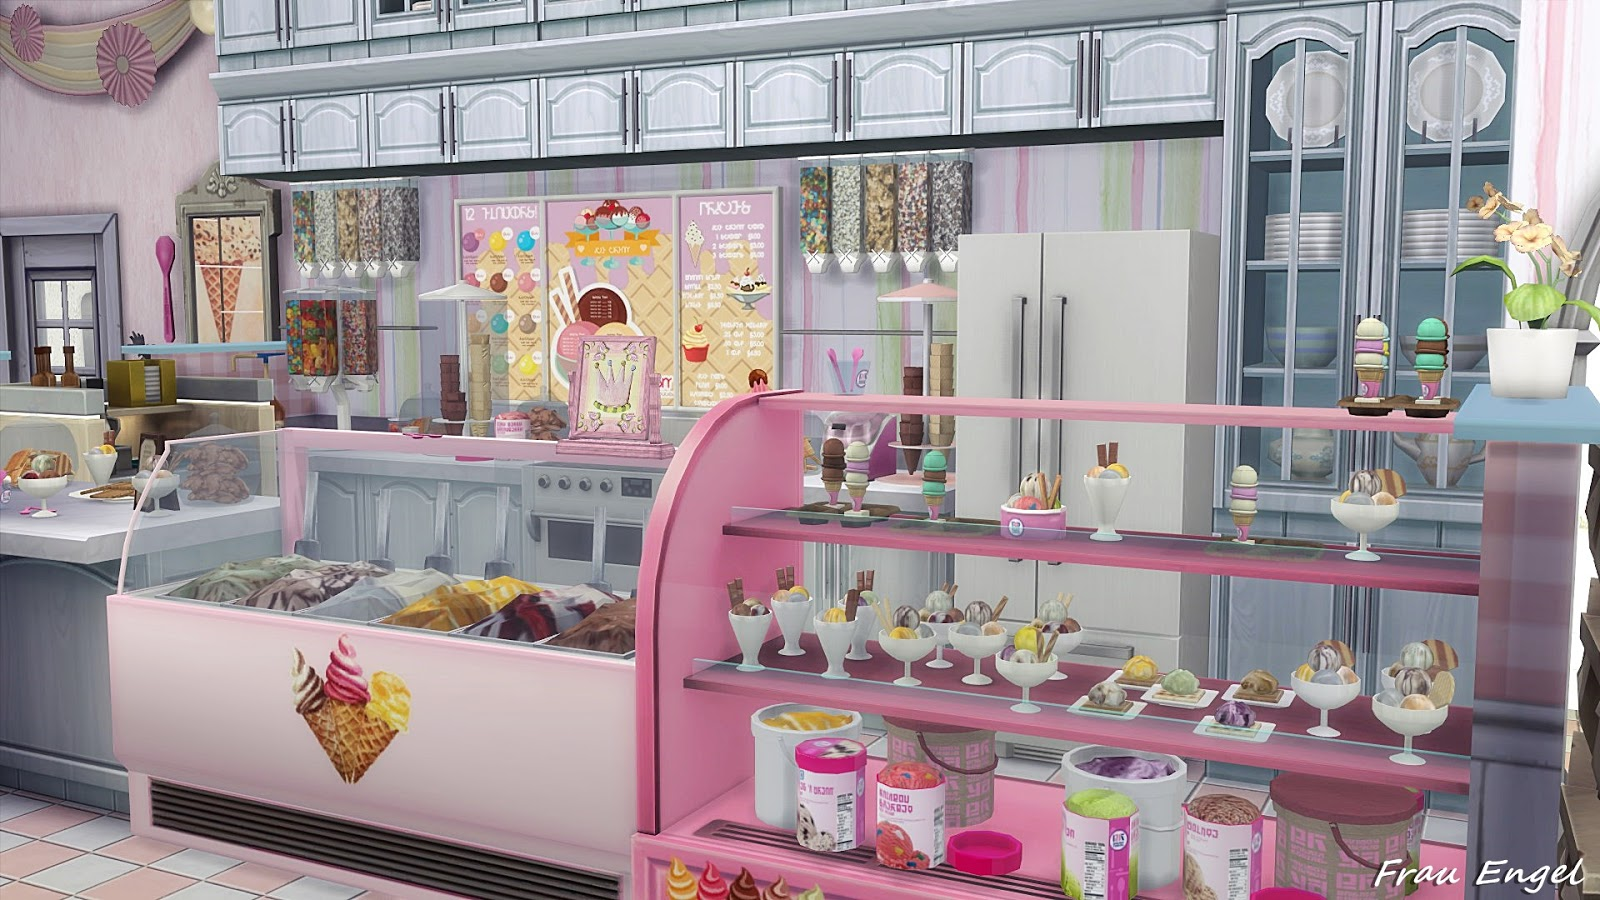 my sims 4 blog ice cream cafe by frau engel. Black Bedroom Furniture Sets. Home Design Ideas